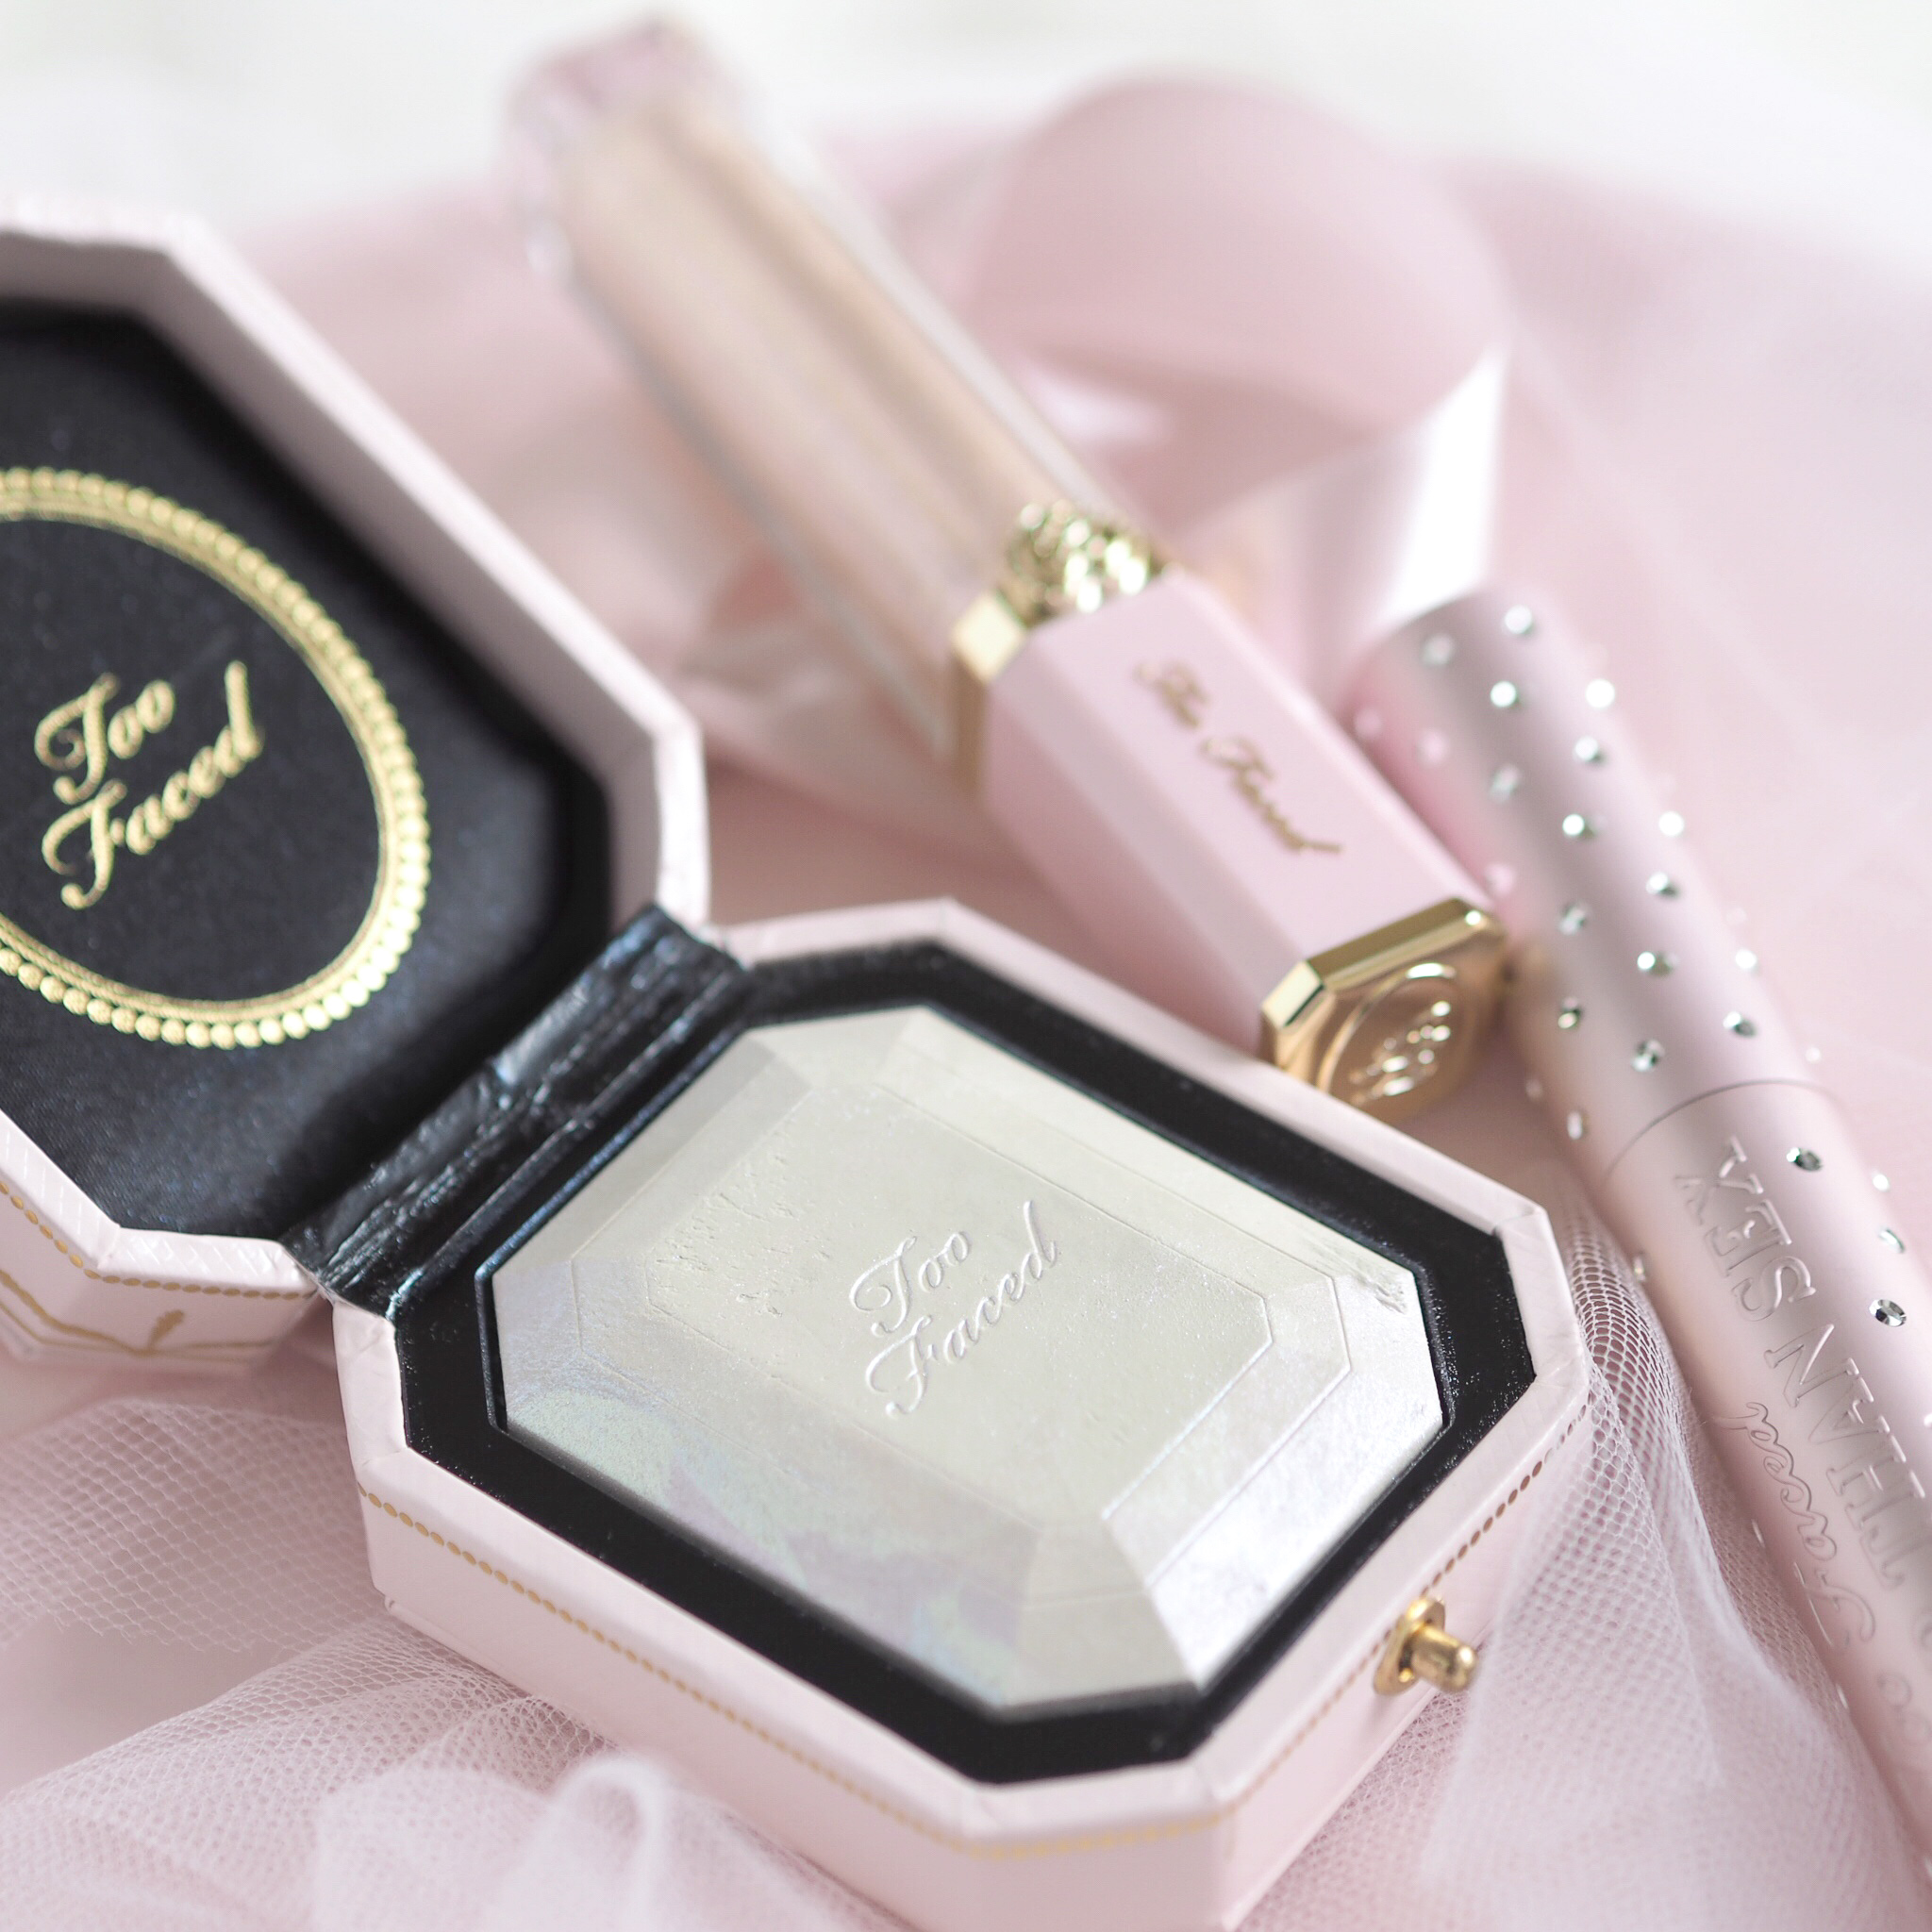 Too Faced Pretty Rich Collection, Diamond Light Highlighter